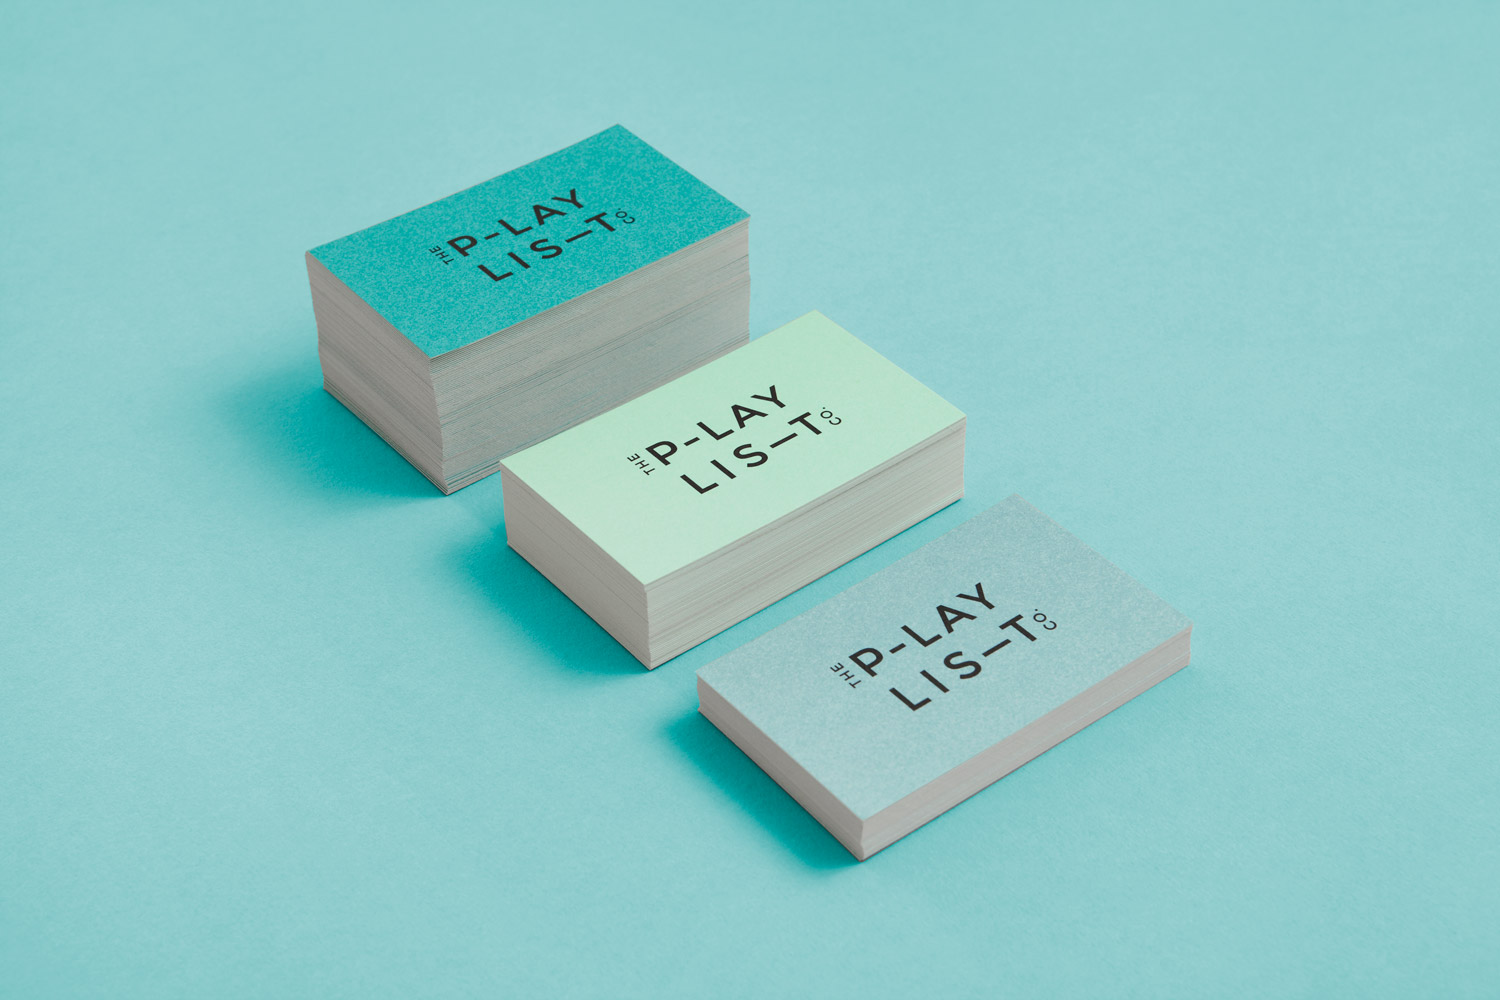 Business cards Toronto based custom soundtrack business The Playlist Co. by graphic design studio Blok